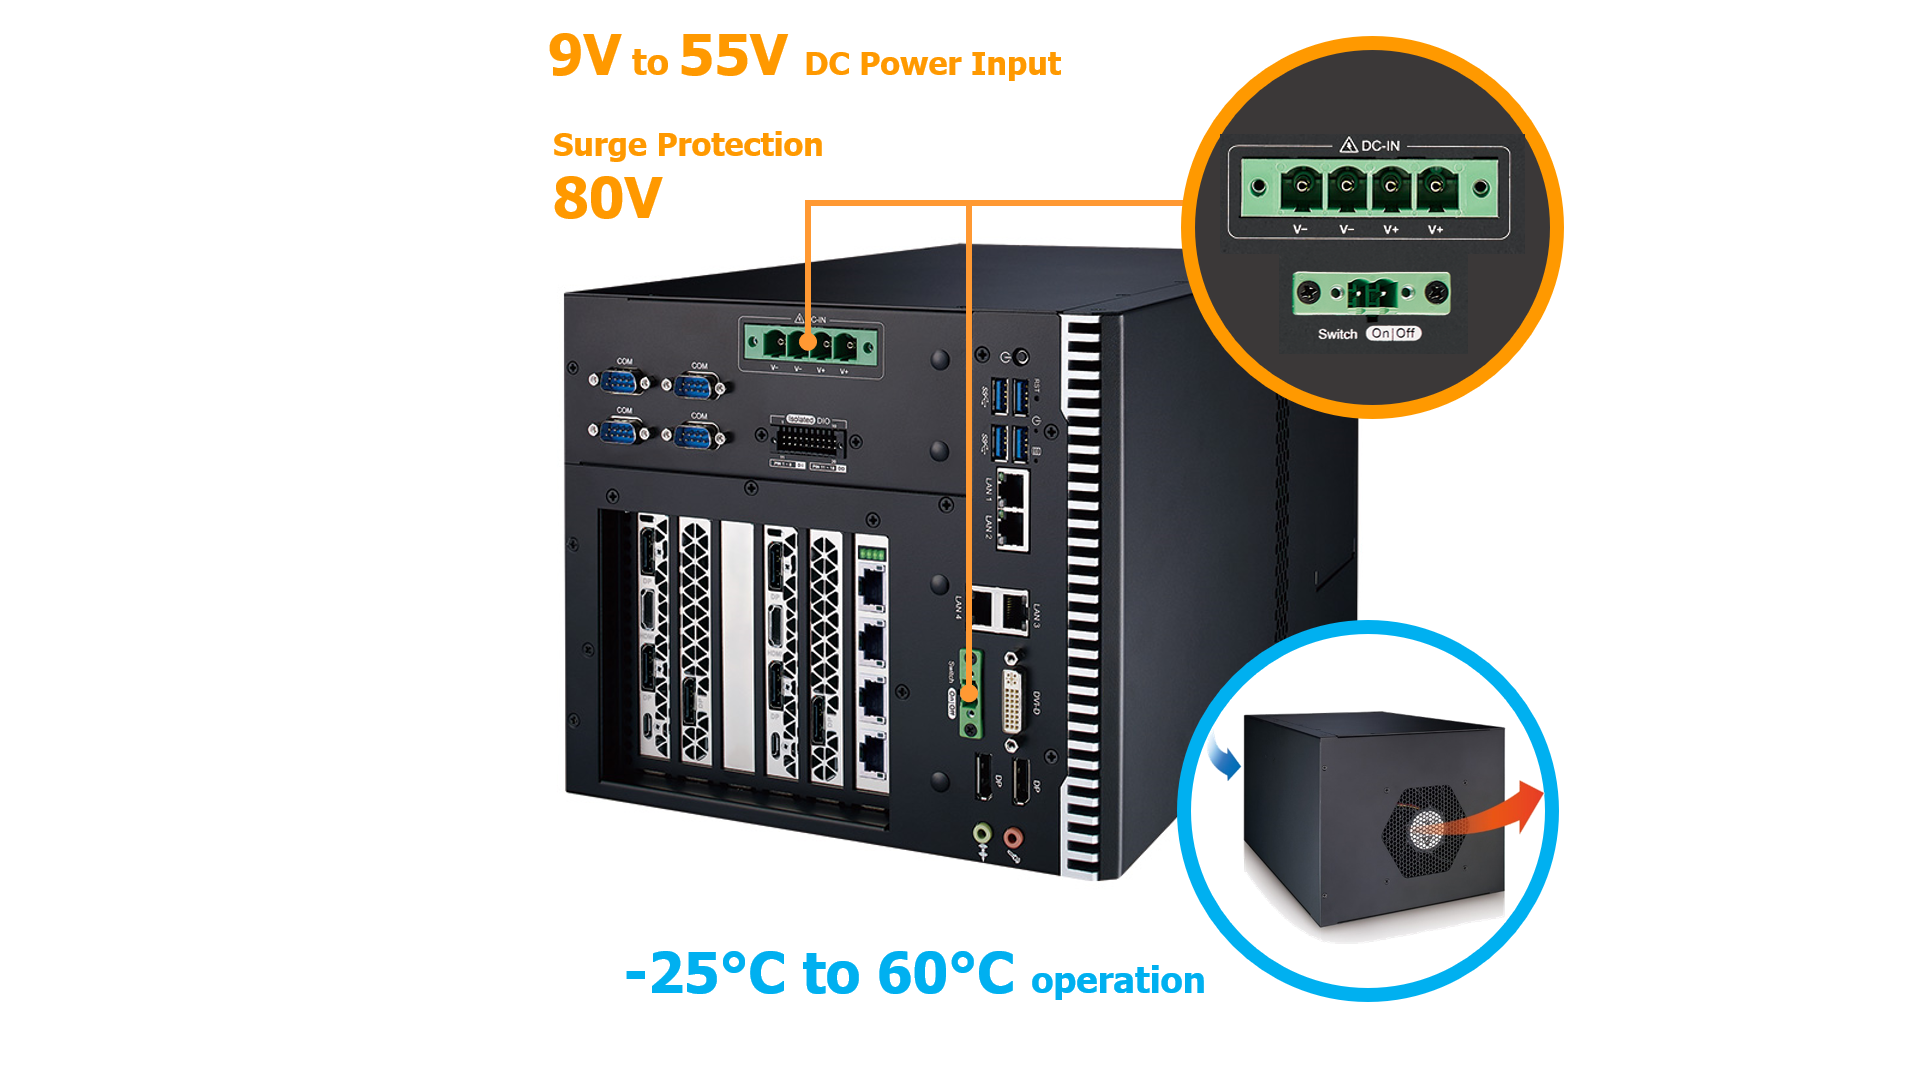 Vecow GPC-1000 is trusted with industrial-grade reliability